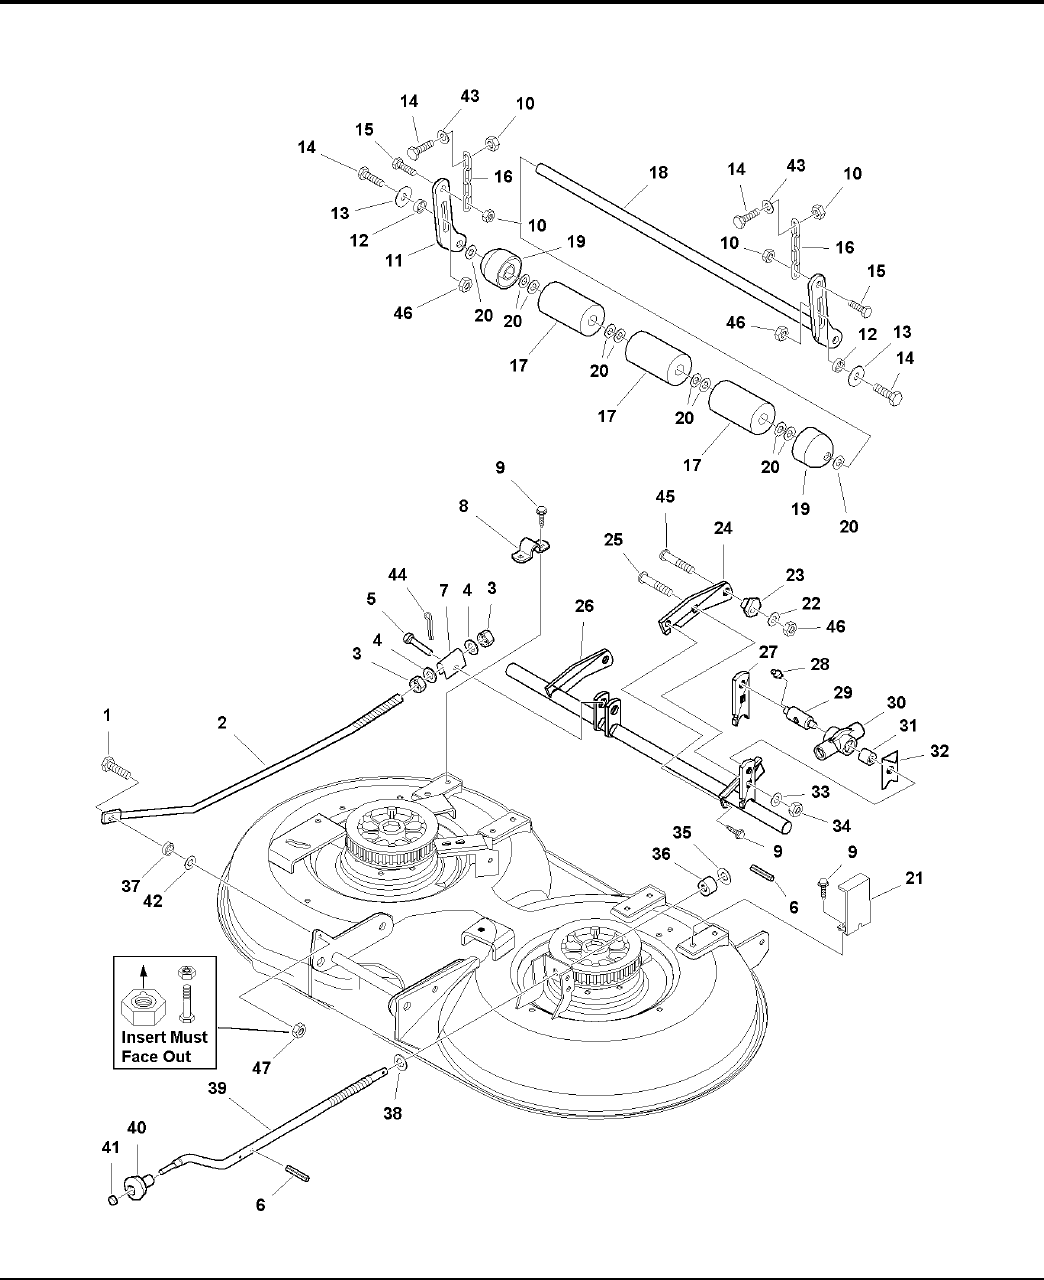 Page 44 of Simplicity Lawn Mower Lancer / 4400 User Guide